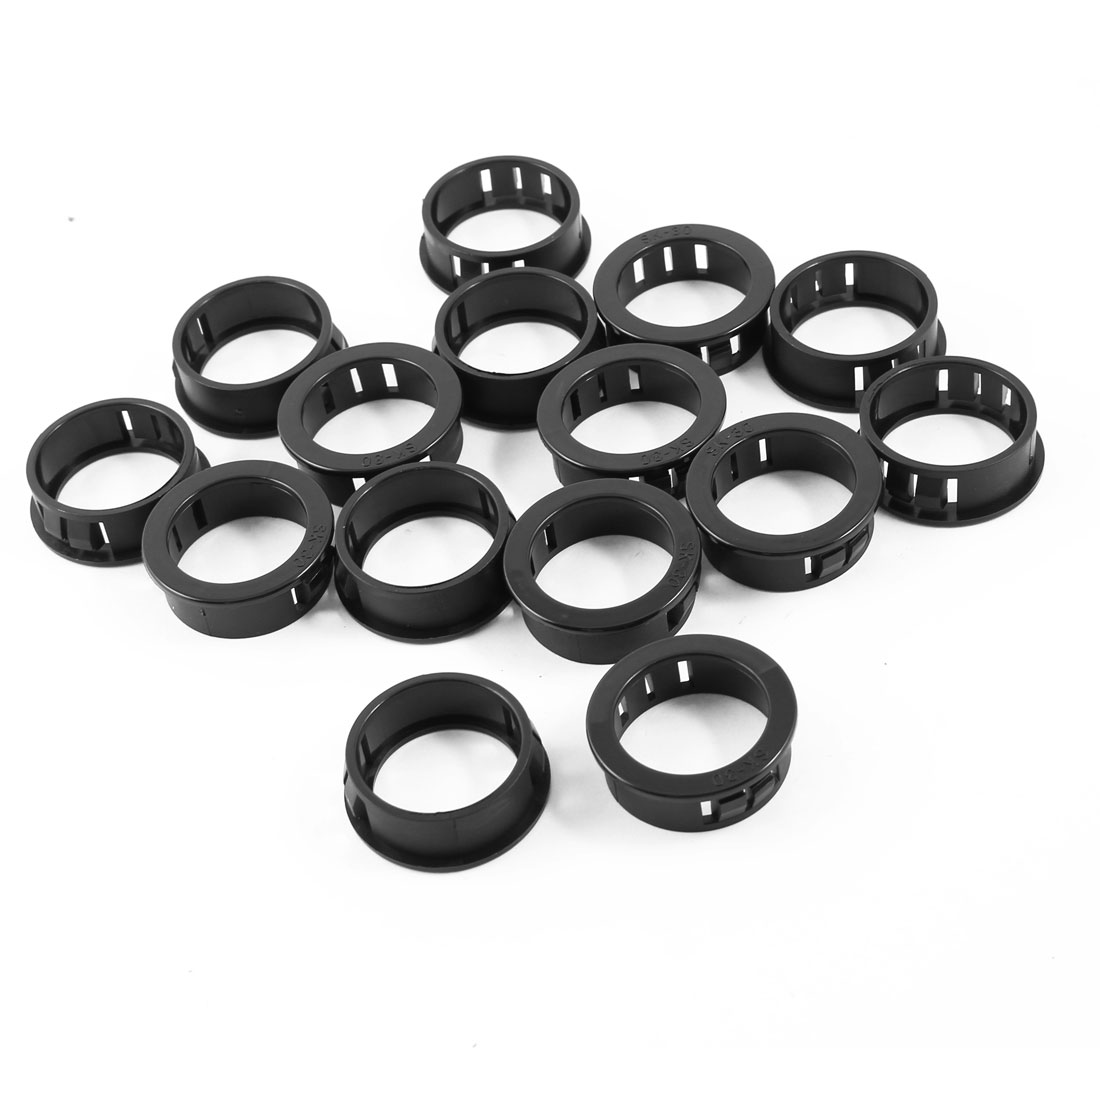 15 Pcs 30mm Mount Hole Cable Hose Harness Protective Grommet Snap Bushing